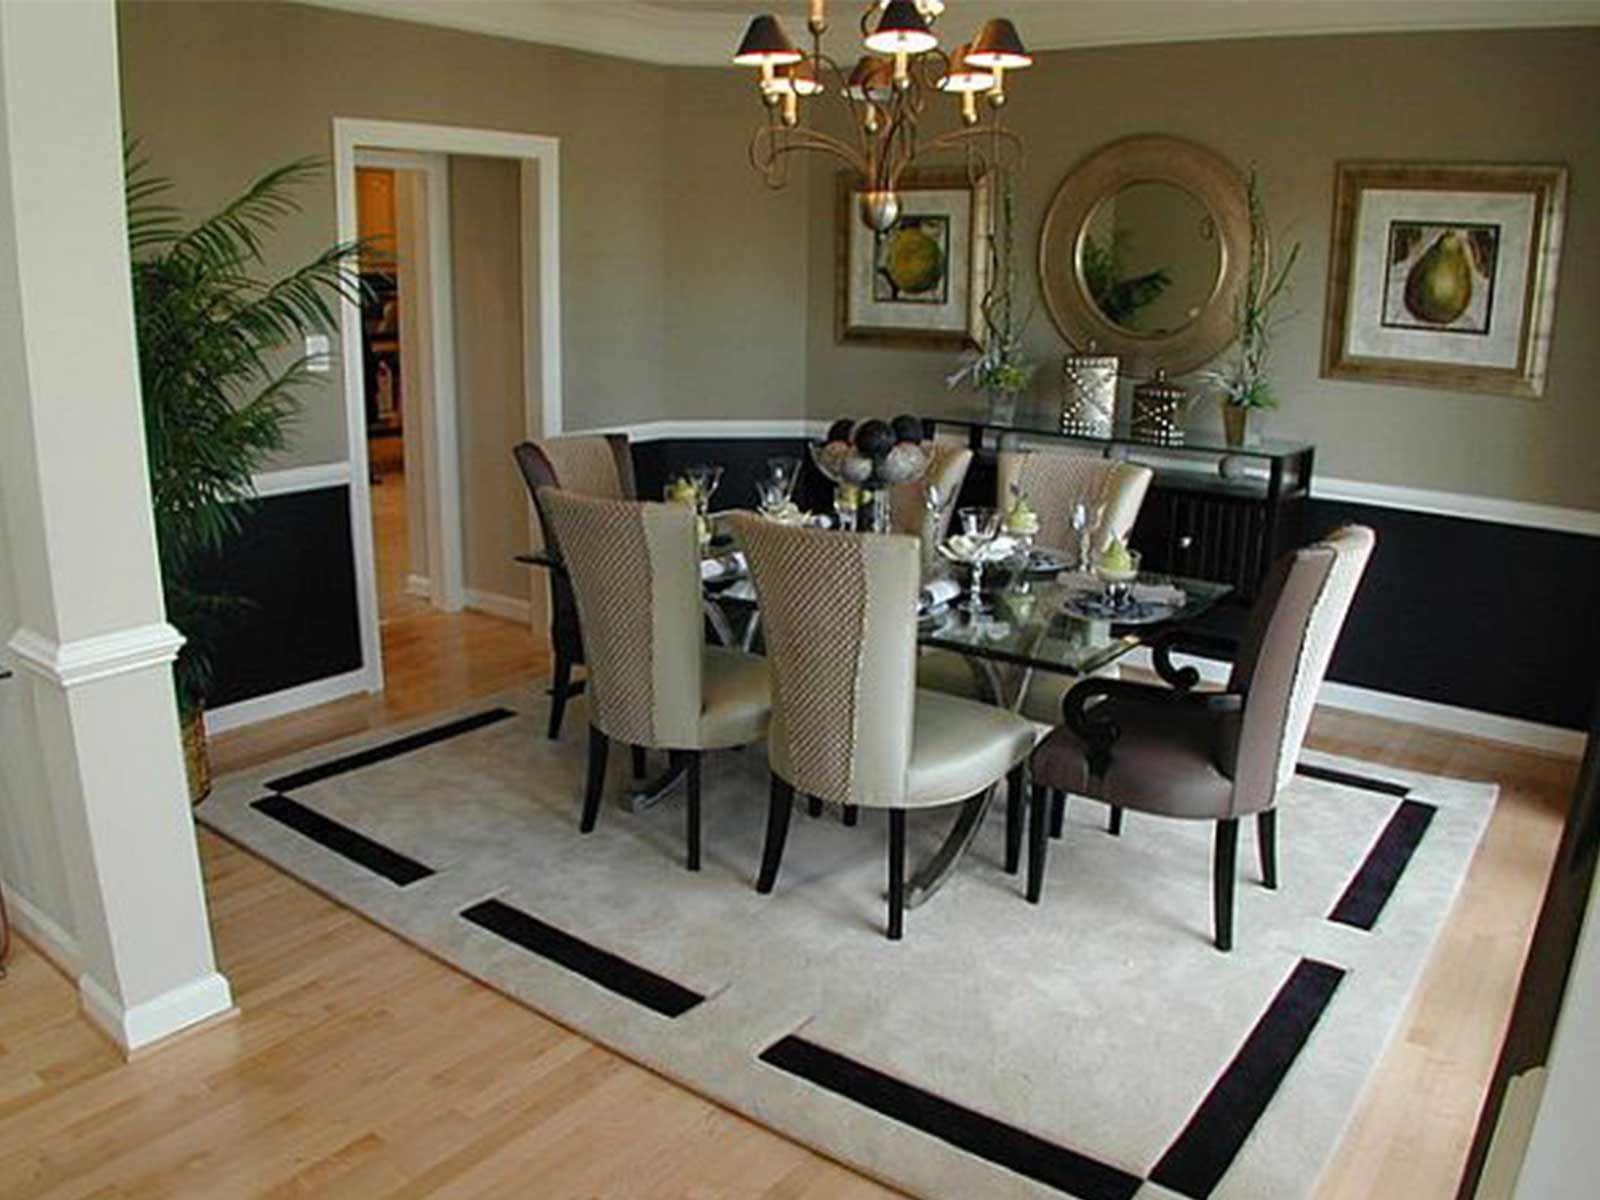 Beautiful Dining Room Area Rug Ideas Photos Home Improvement Modern Elegant Rooms Luxury Living Cool Traditional Dinner Decorating Wallpaper Blue Designs Formal Dining Room Decor Minimalist Dining Room Beautiful Dining Rooms